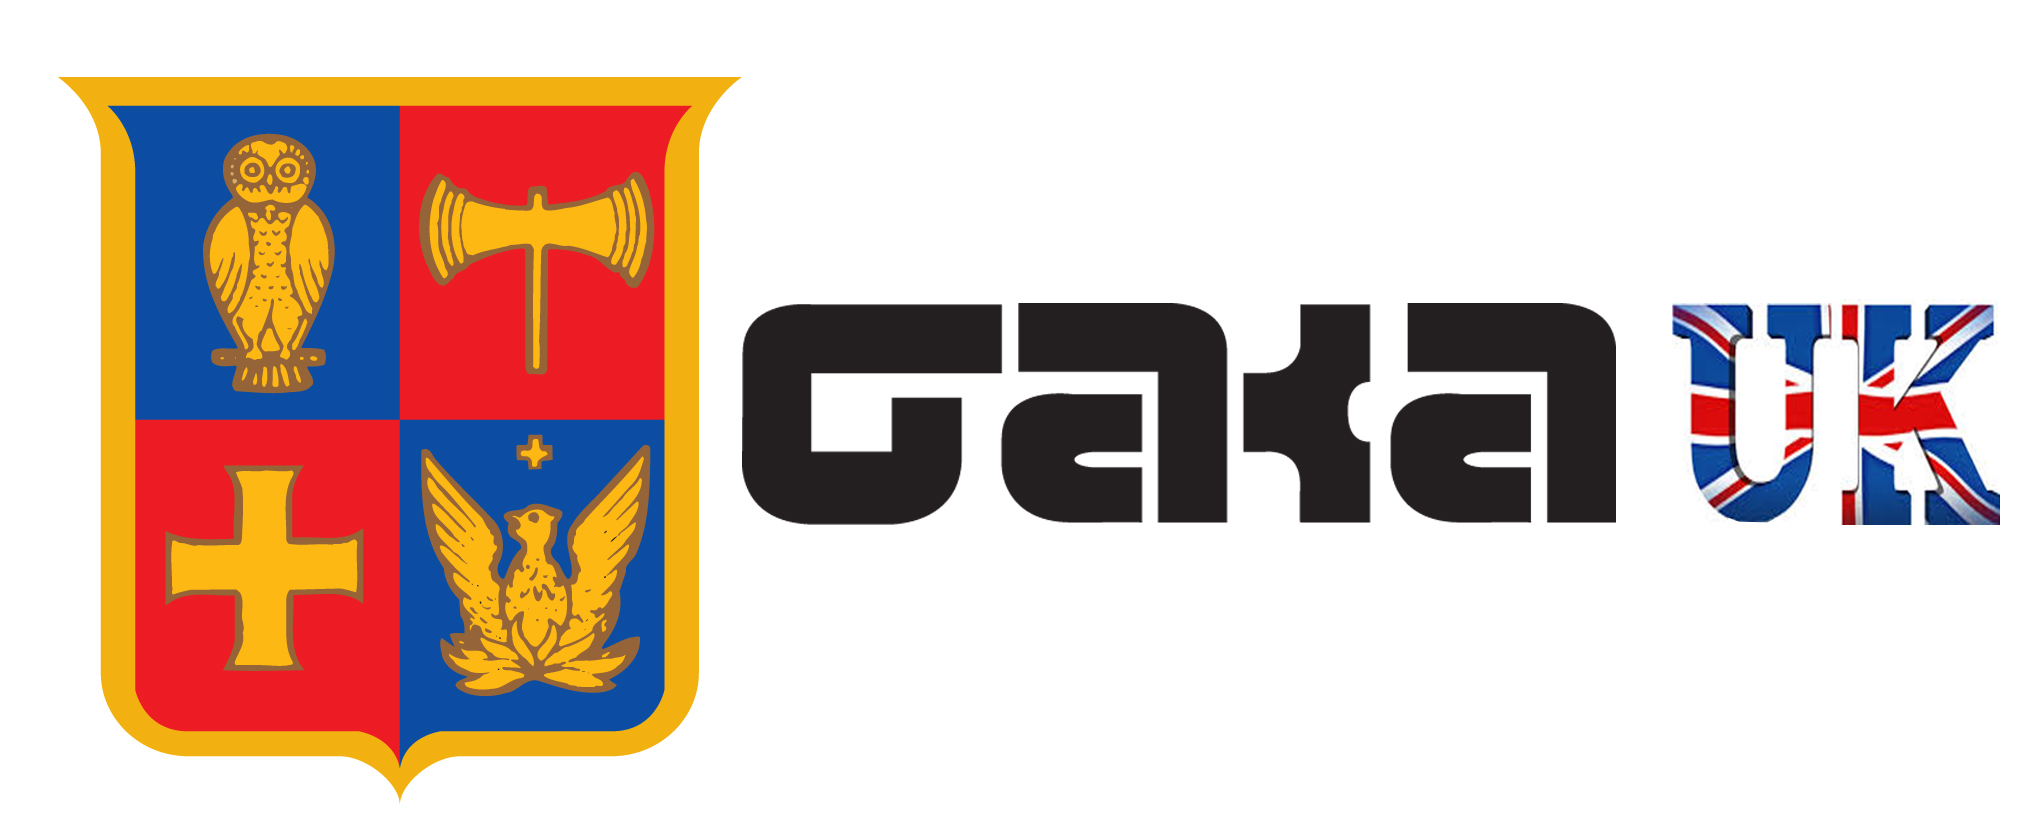 saka-uk-logo-high-resolution